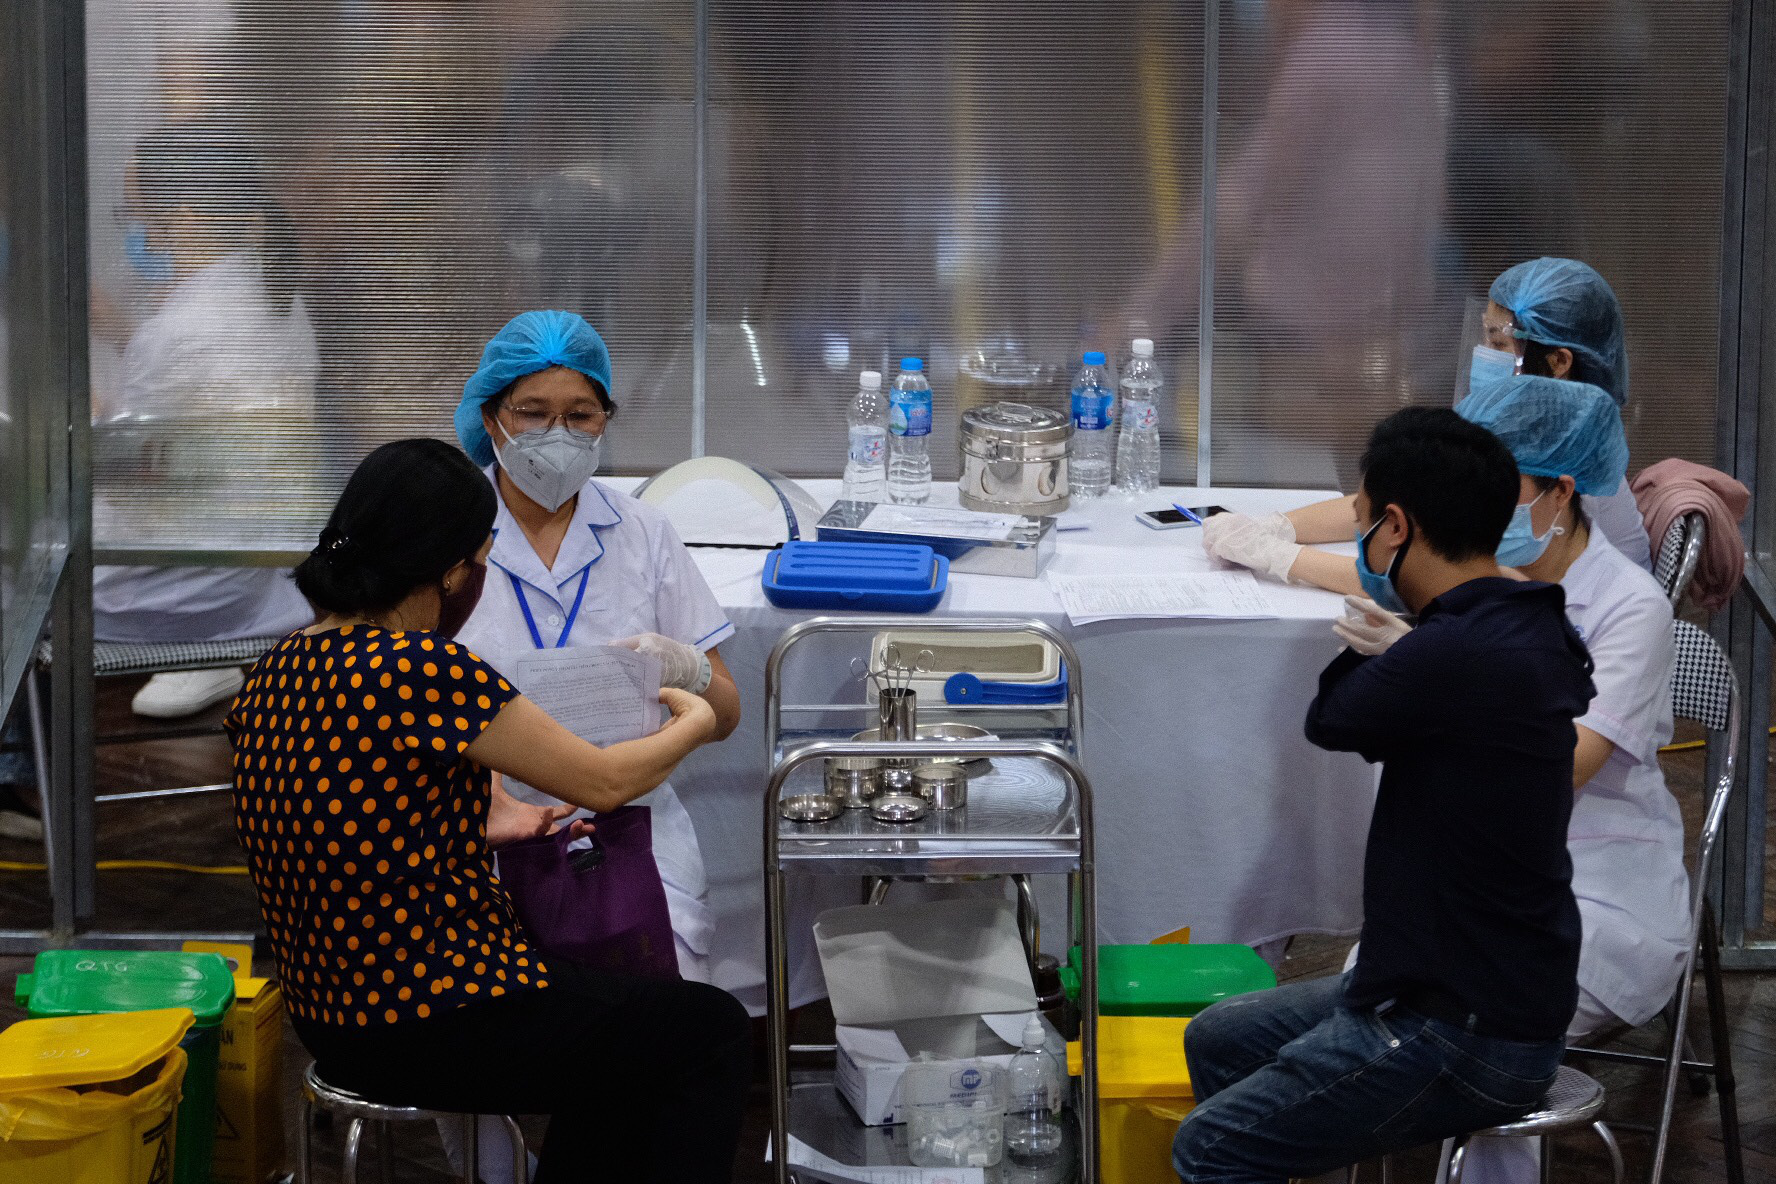 Vietnam to receive 20 million COVID-19 vaccine doses this month